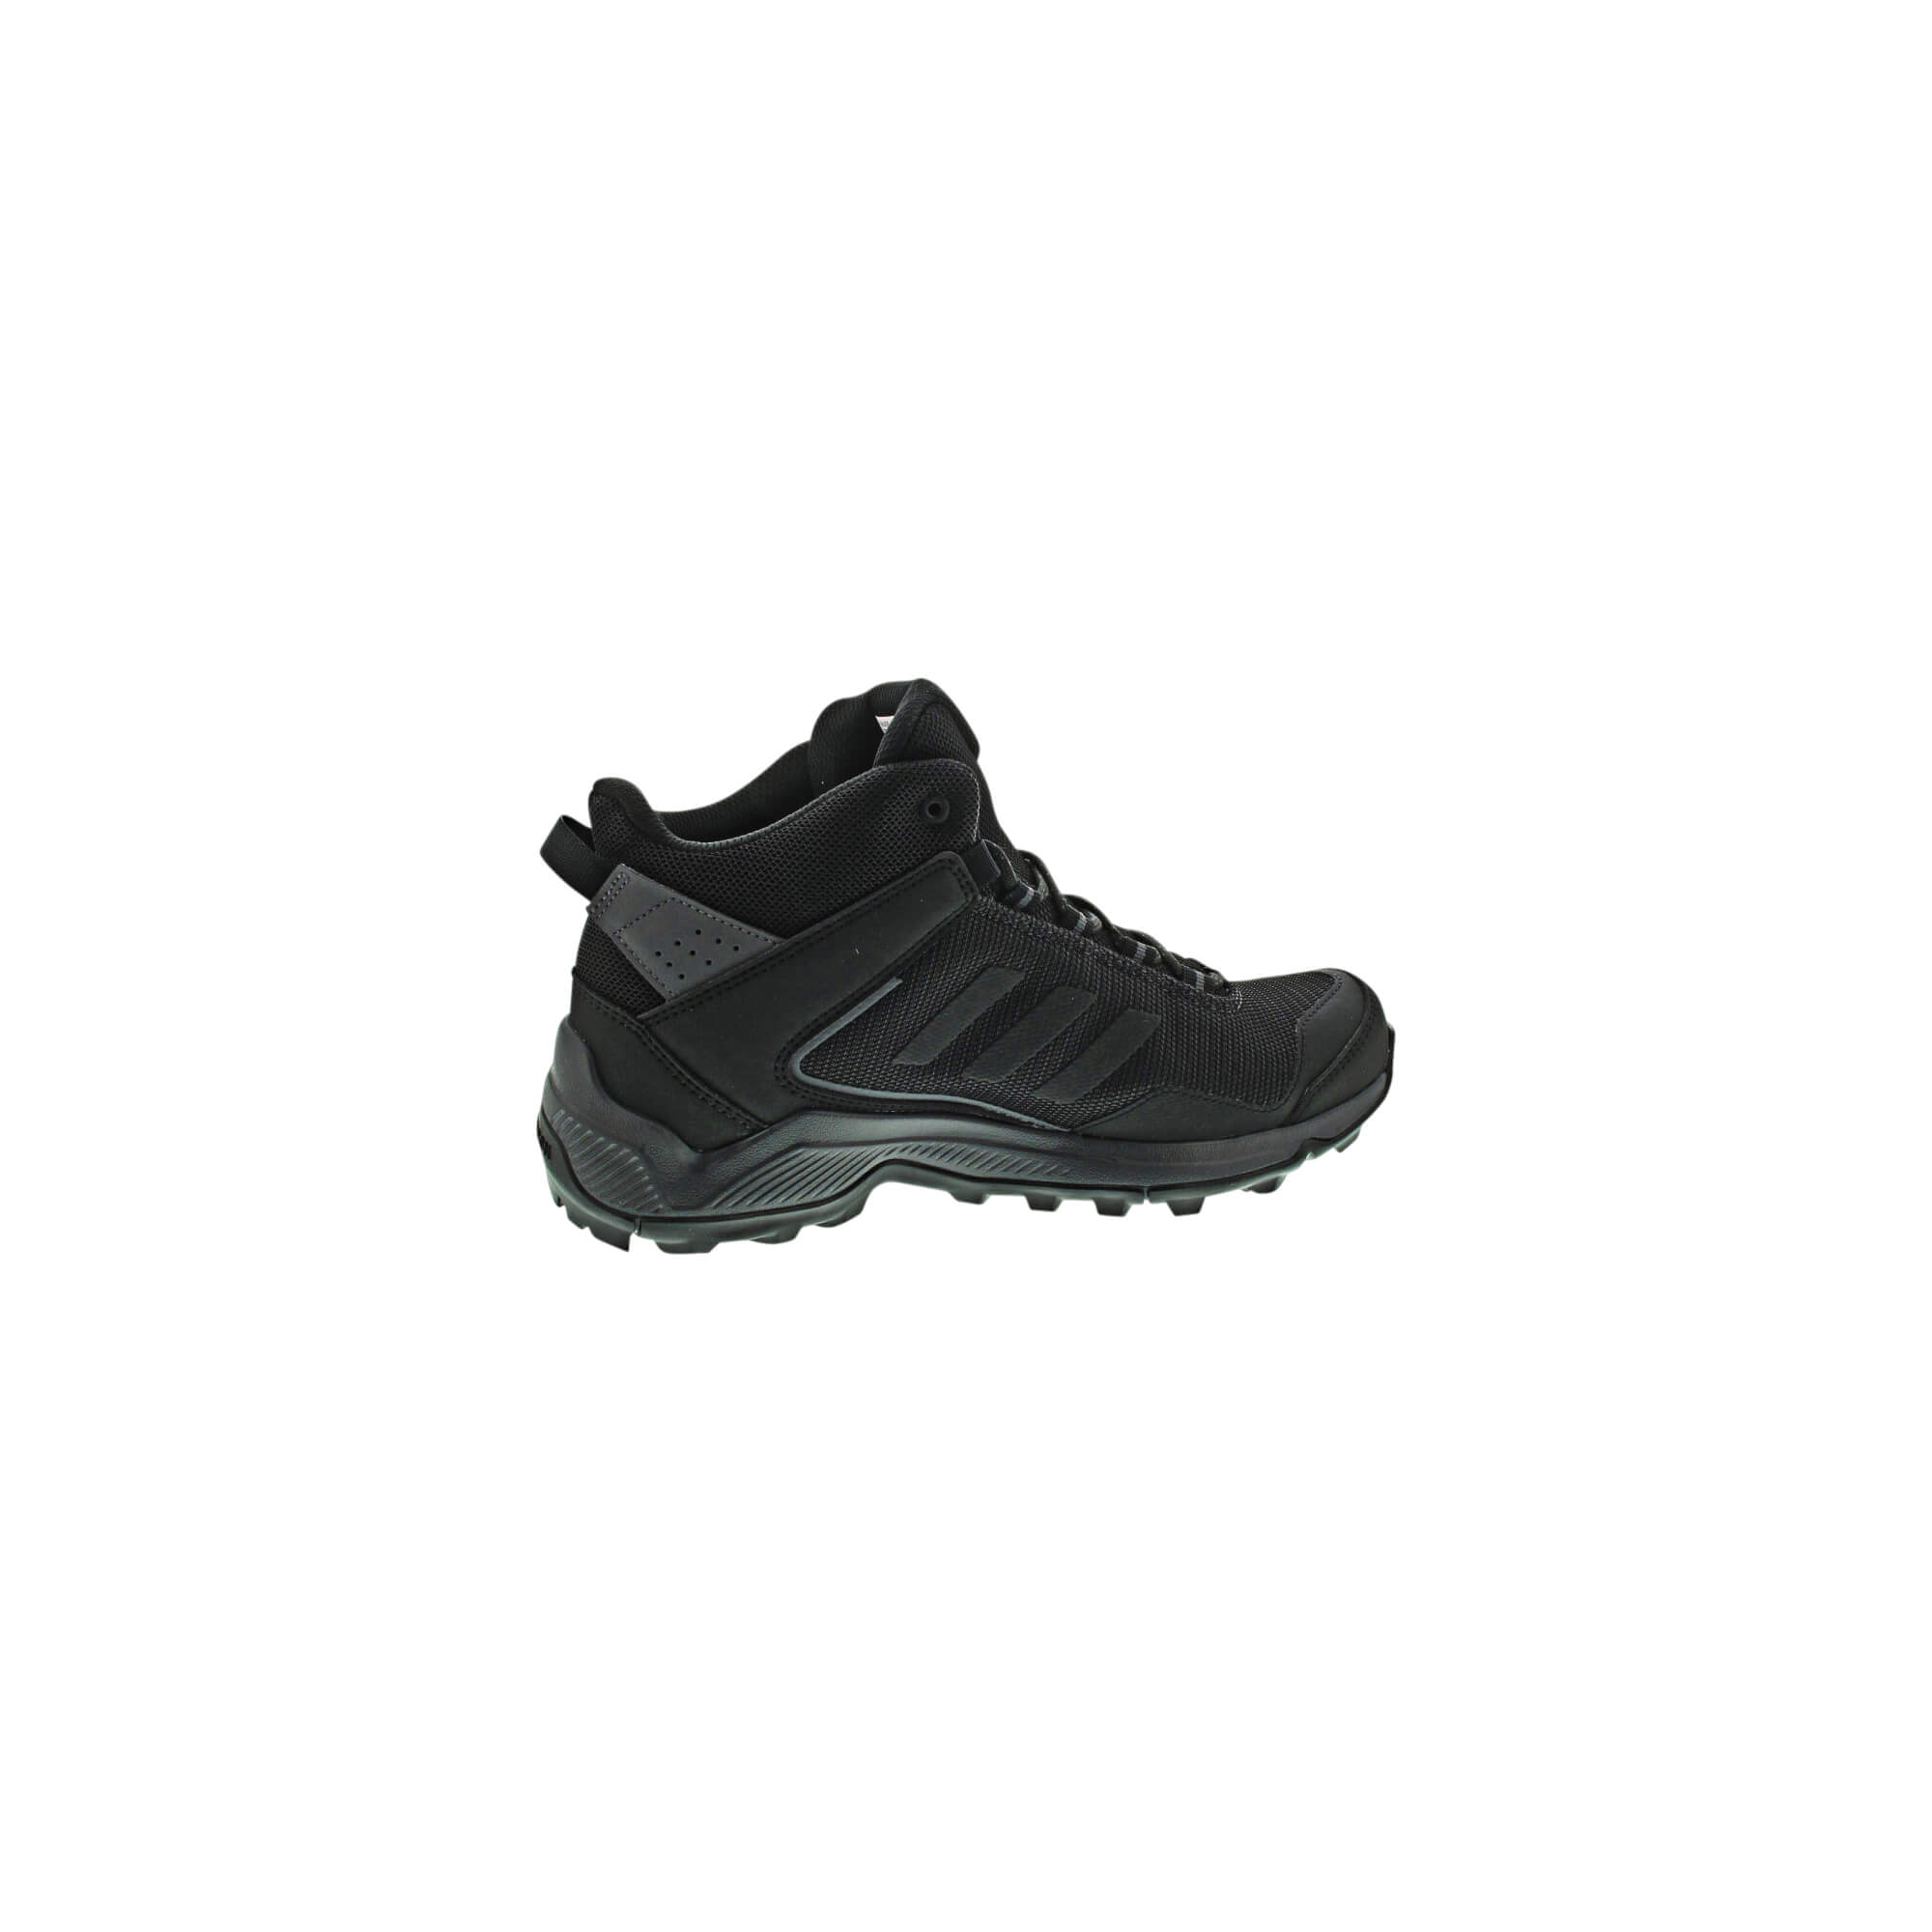 Terrex Entry Hiker MID GTX imagine produs